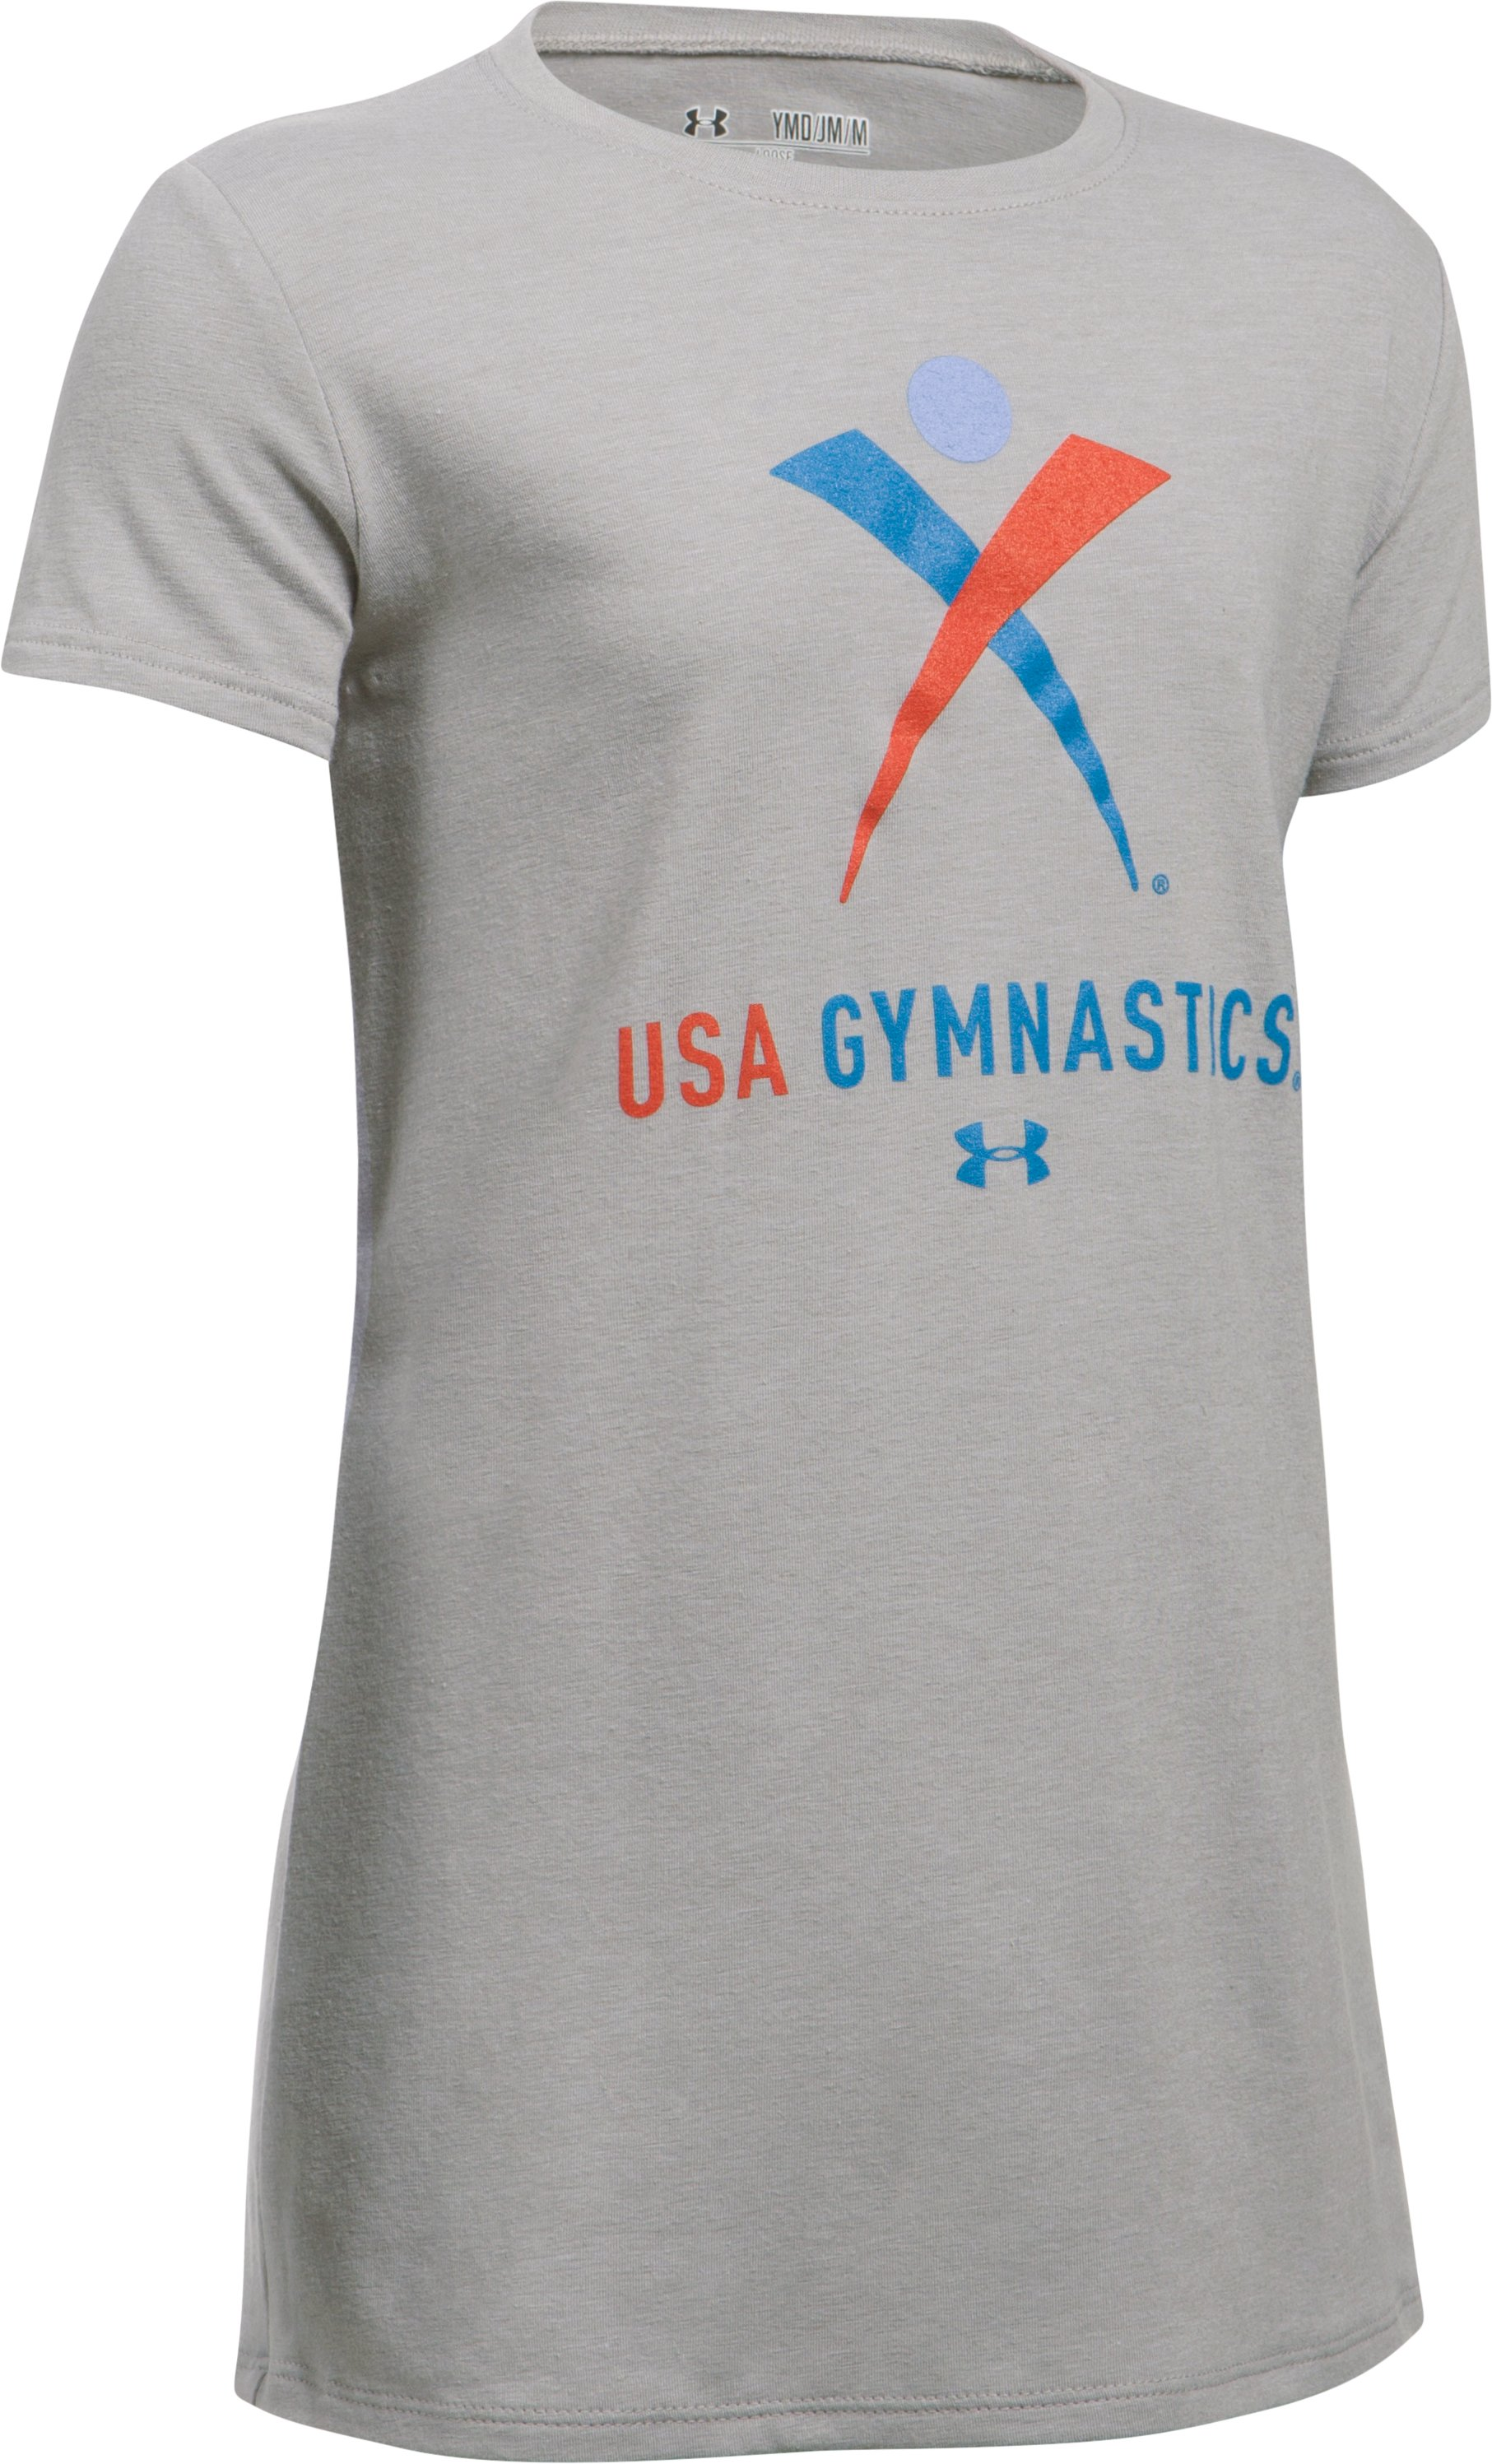 USA Gym SS T, True Gray Heather